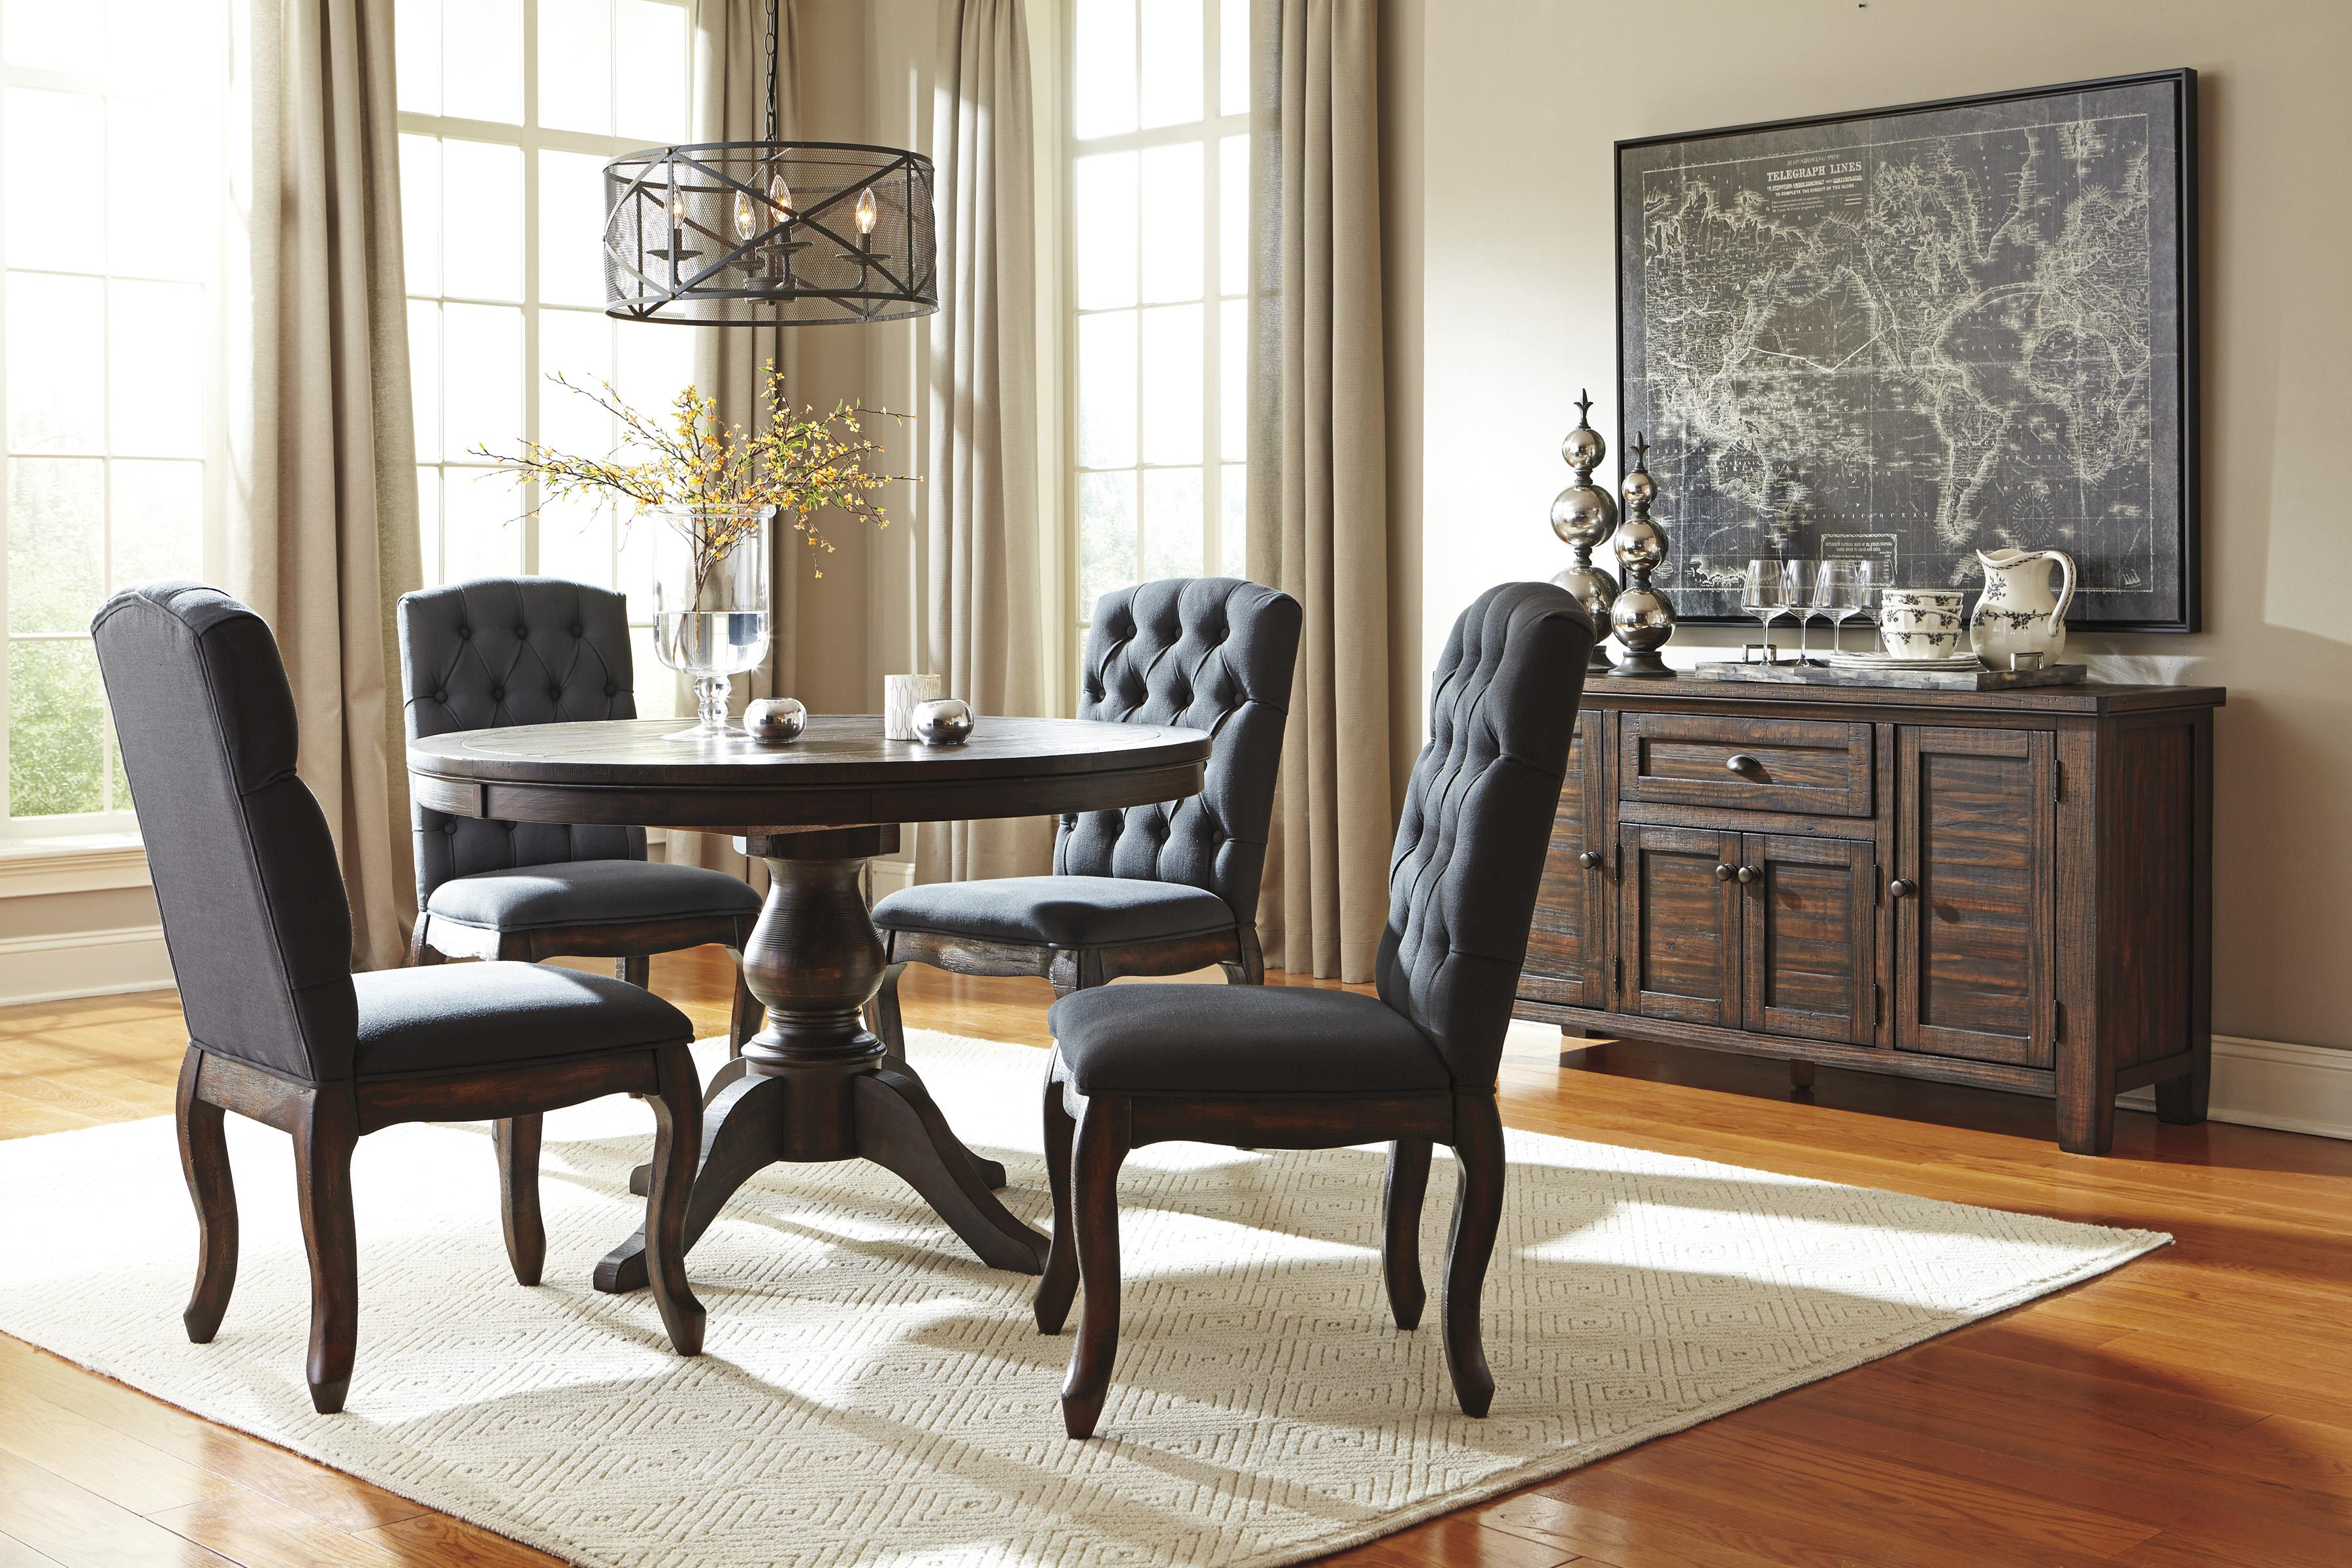 Signature Design by Ashley Trudell Casual Dining Room Group - Item Number: D658 Dining Room Group 2